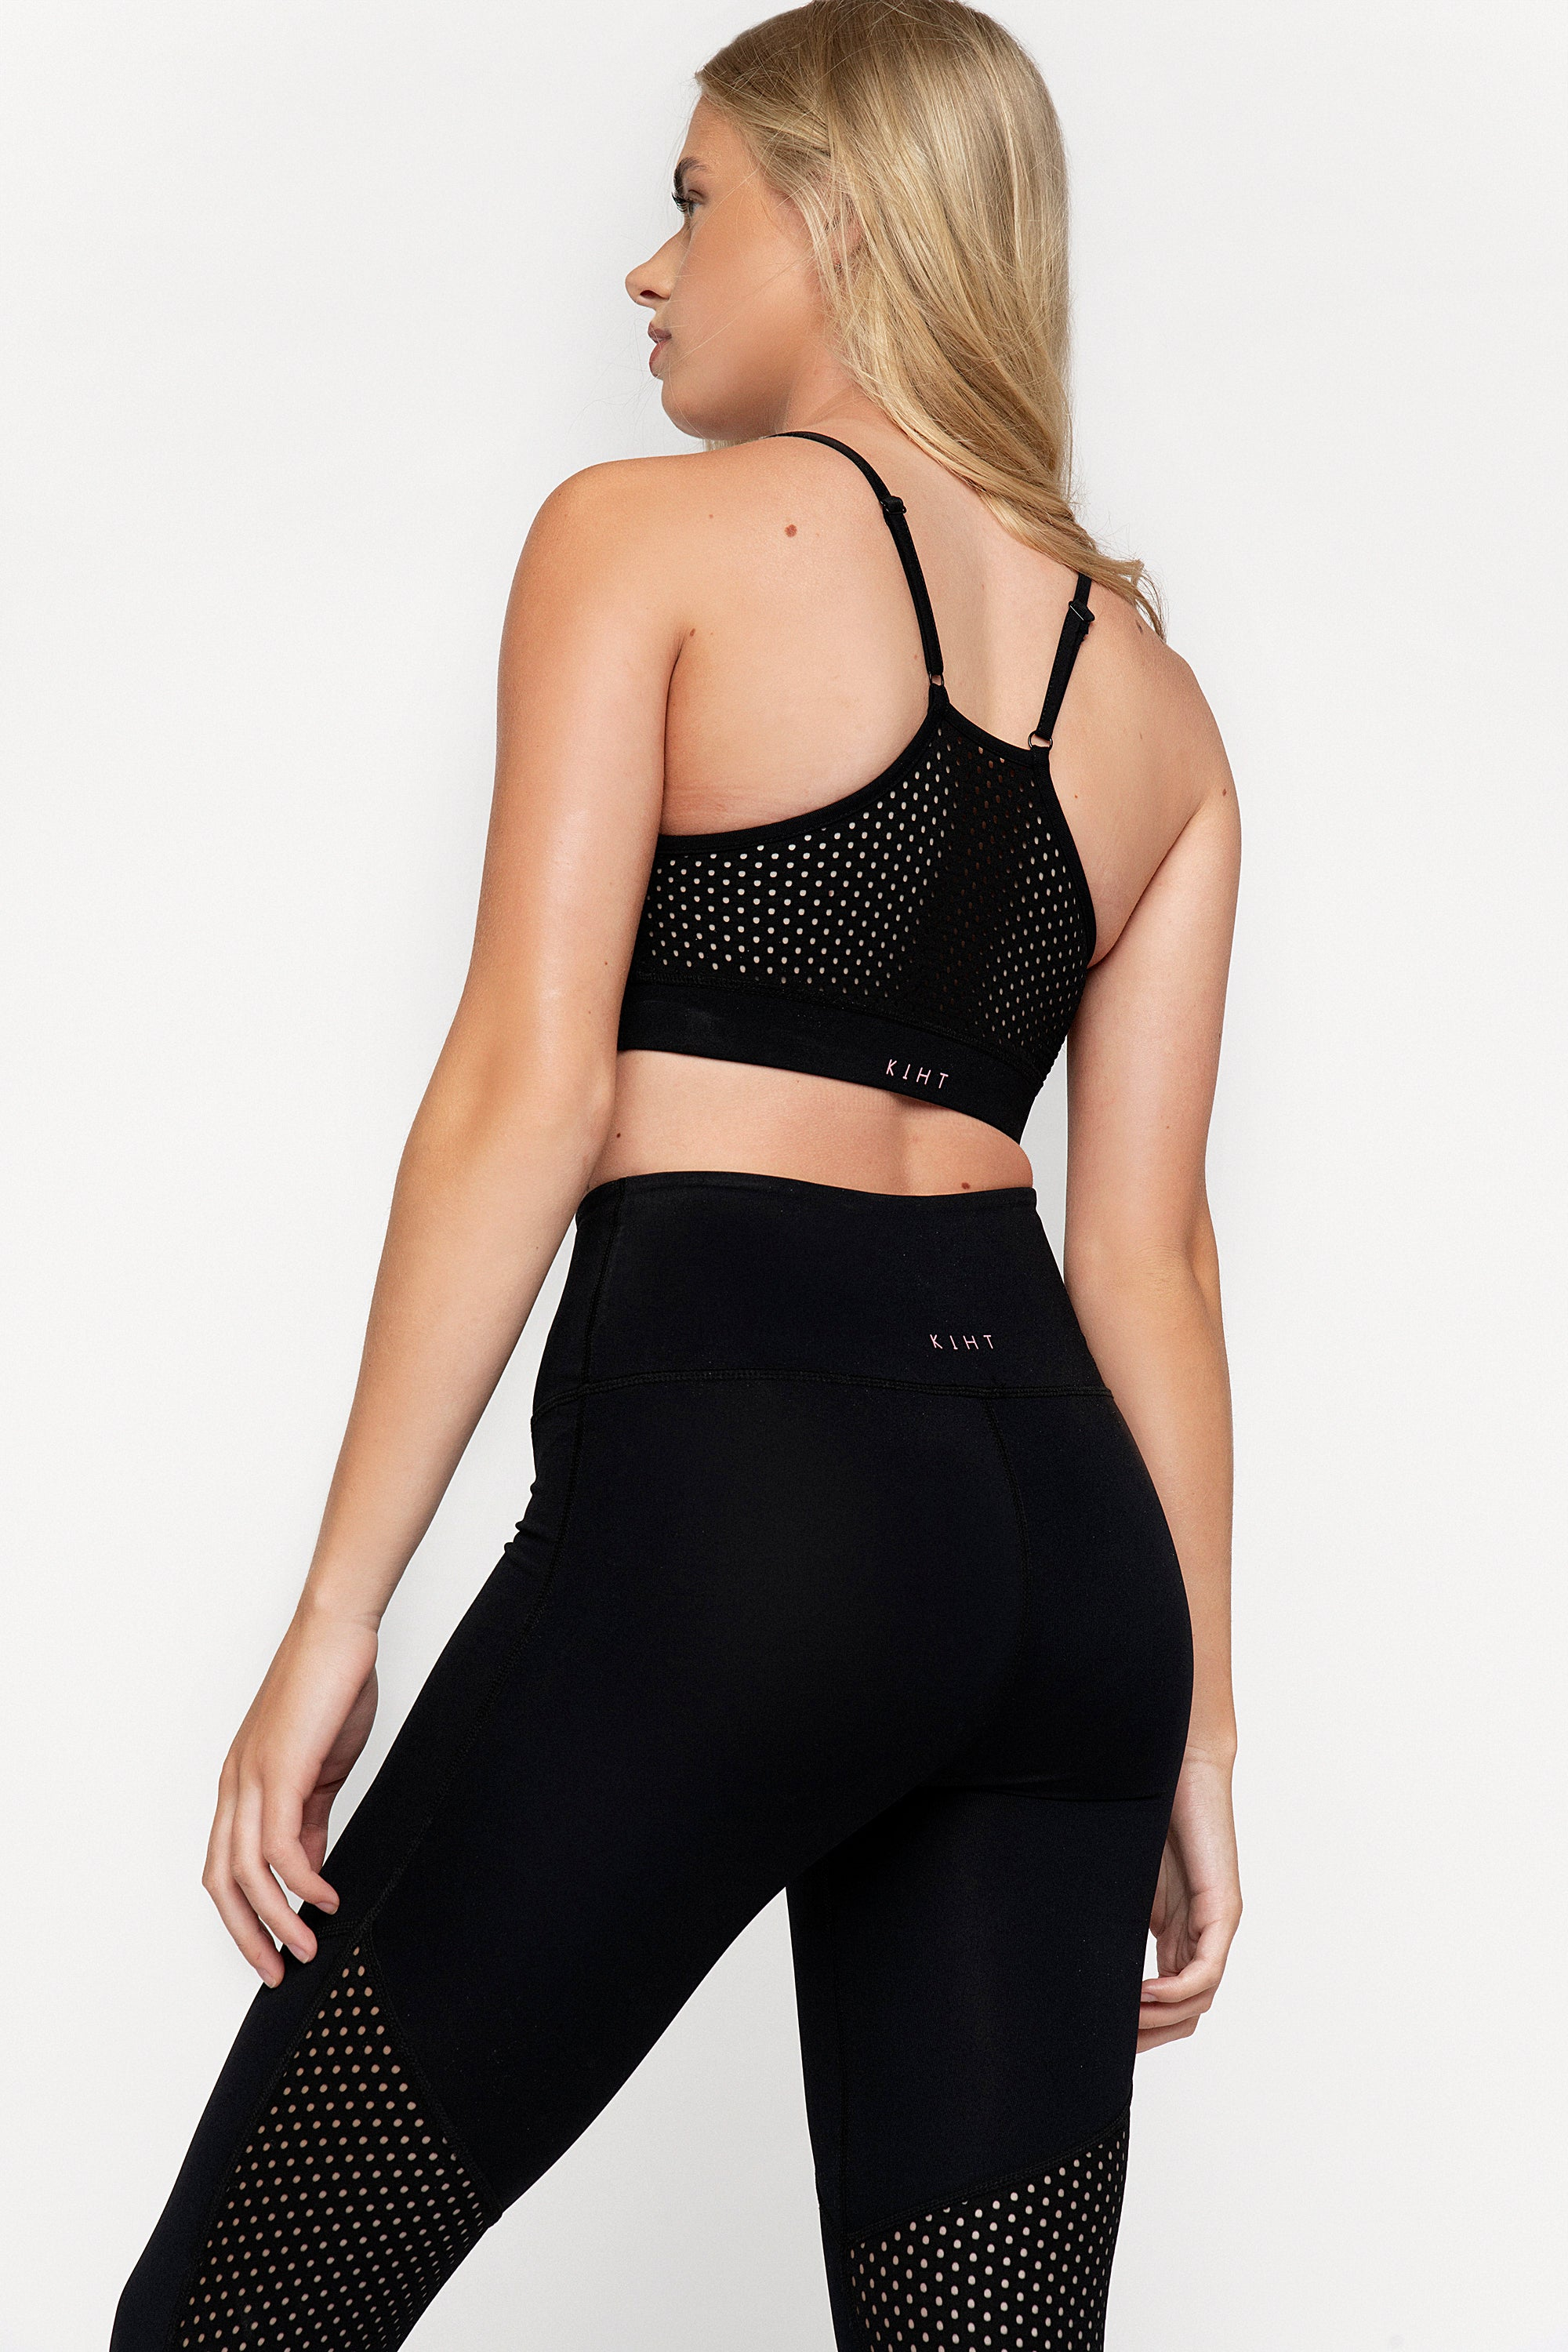 Black strappy crop top with scoop neck punched panel detail on the front and back. Adjustable straps, removable bust cups and compressive super soft fabric make it both comfy and super cute.  Back